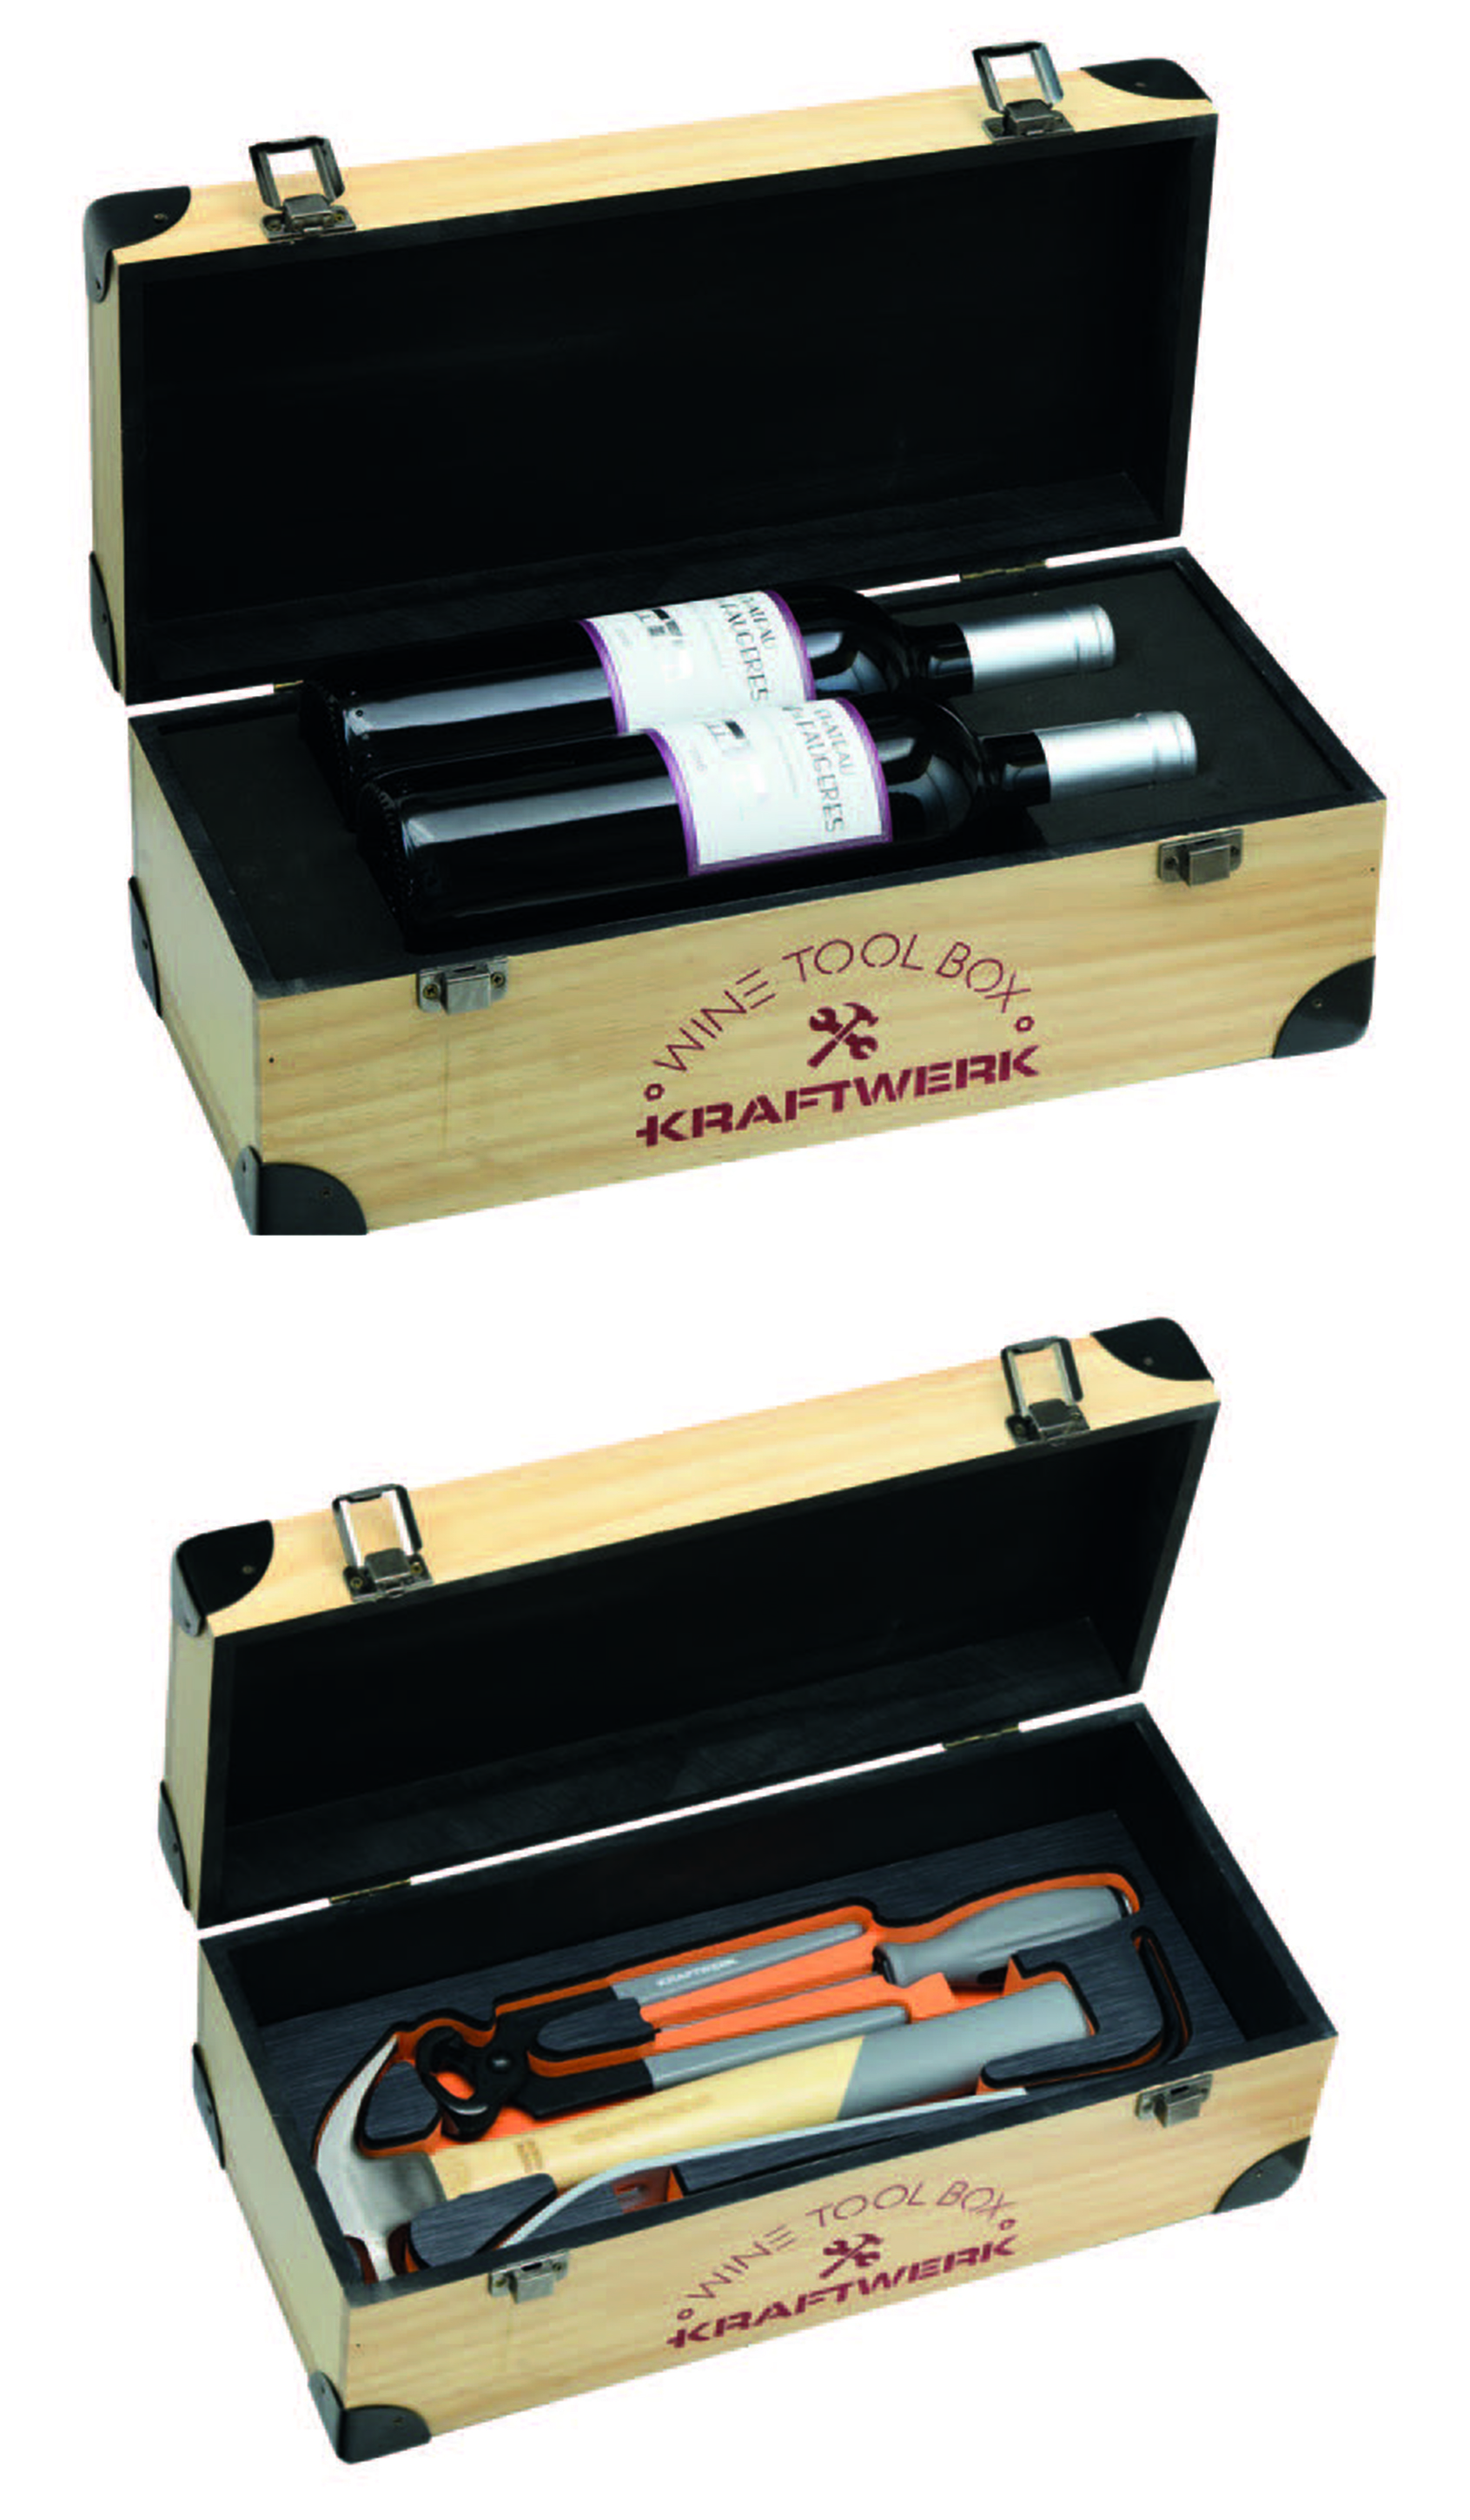 The Wine Tool Box